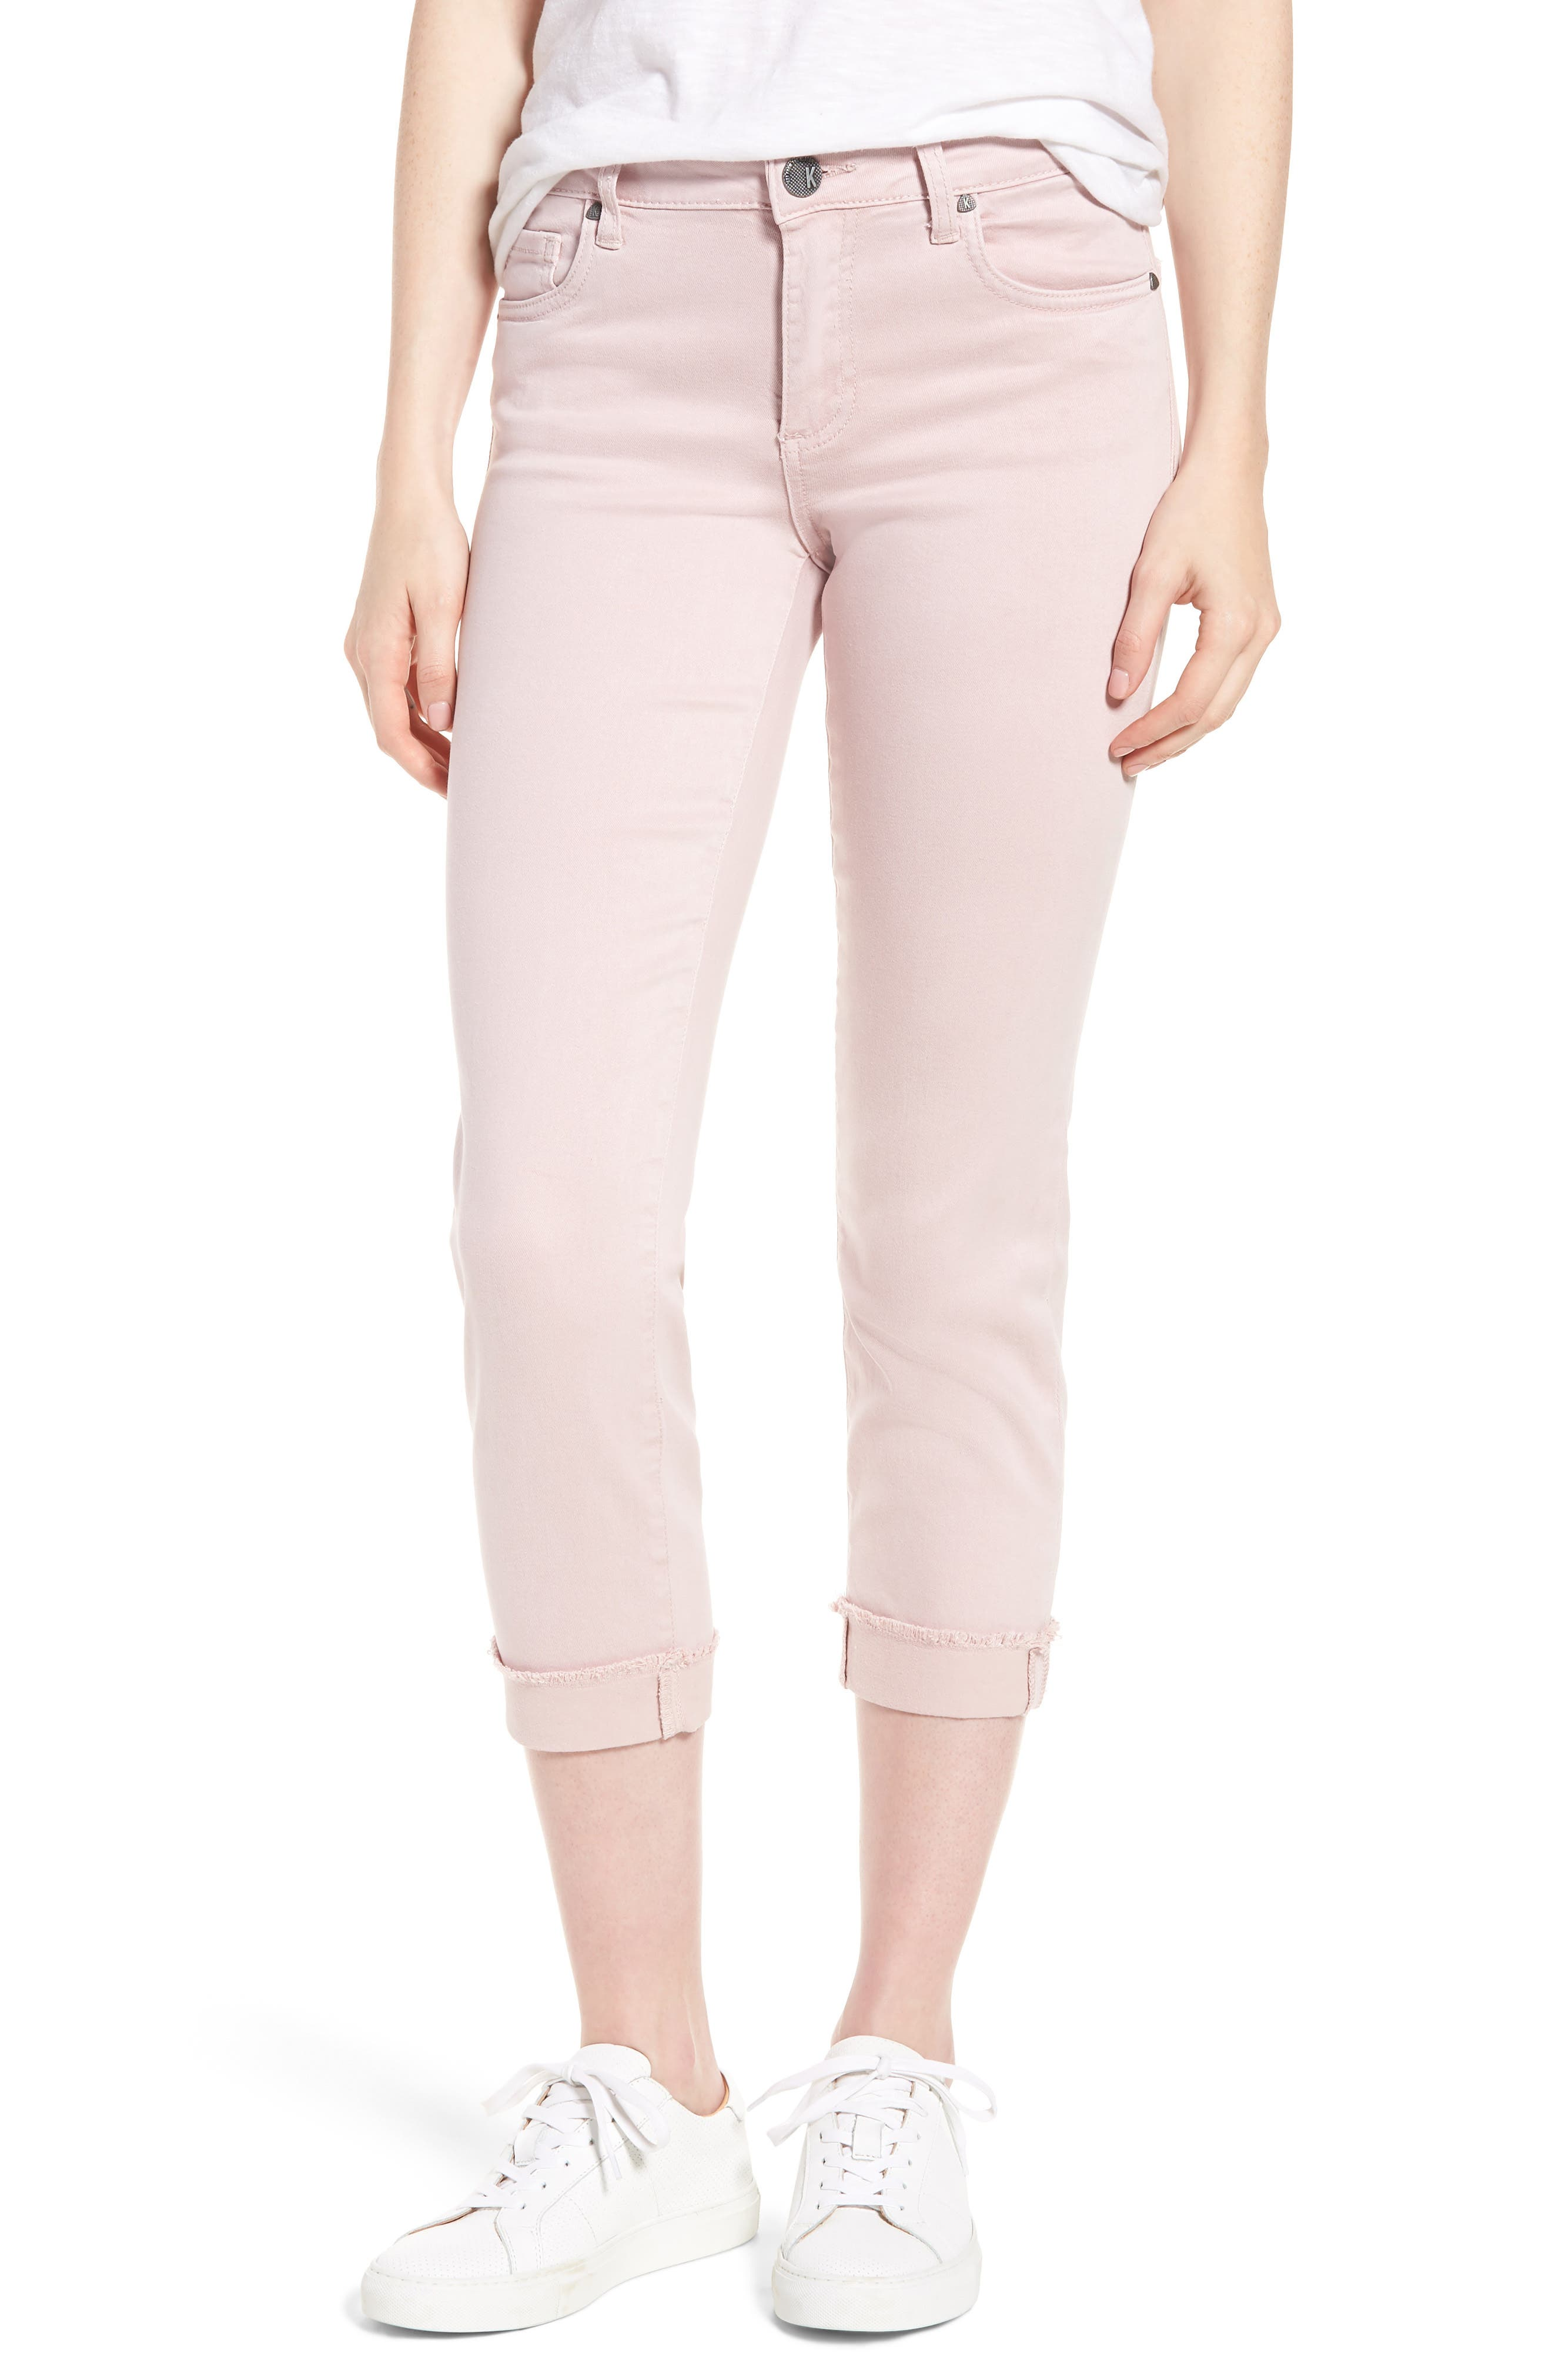 KUT from the Kloth Amy Crop Skinny Jeans,                             Main thumbnail 1, color,                             Rose